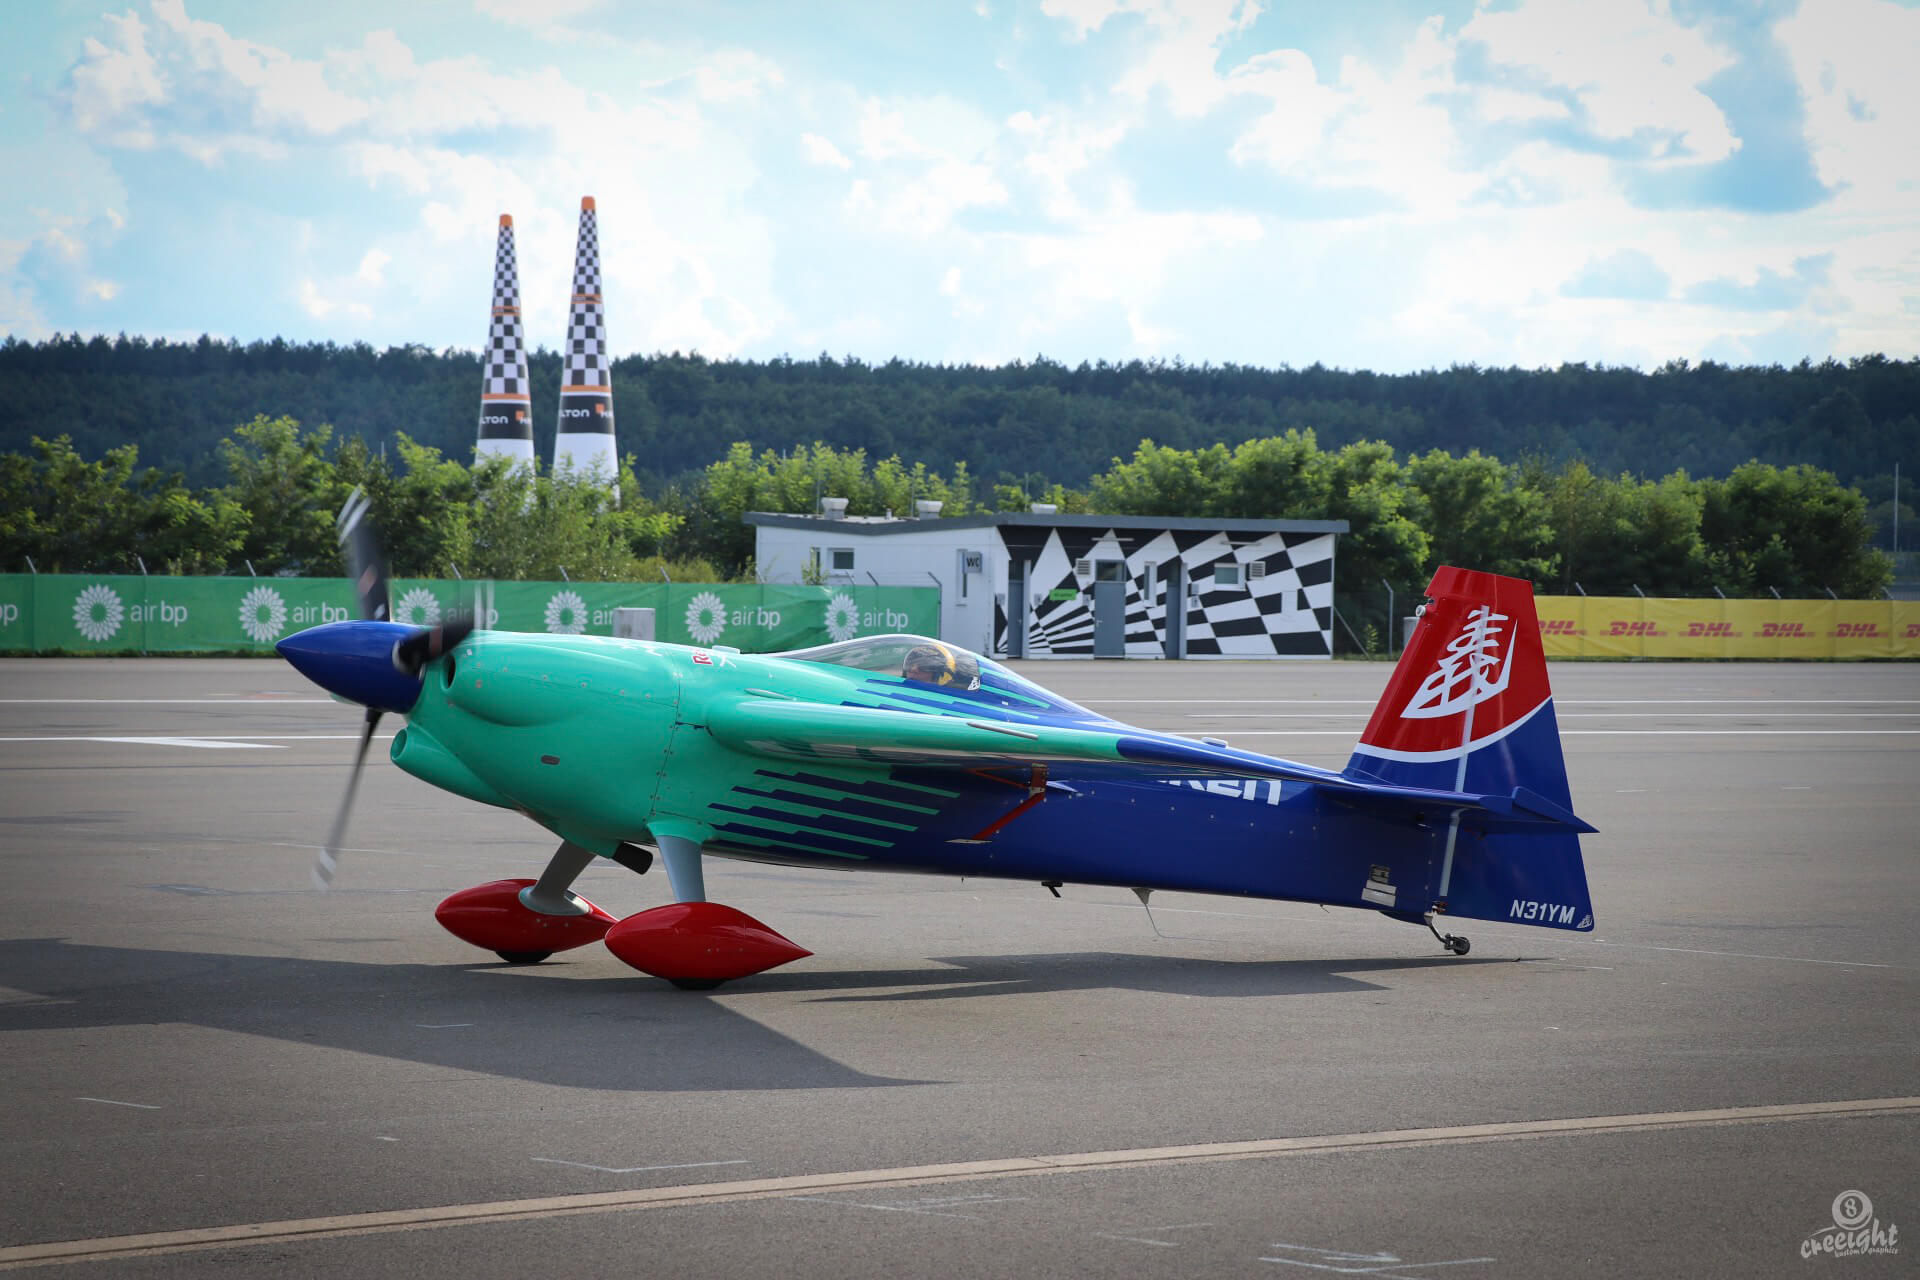 Yoshihide Muroya, Red Bul Air Race 2017, Lausitzring